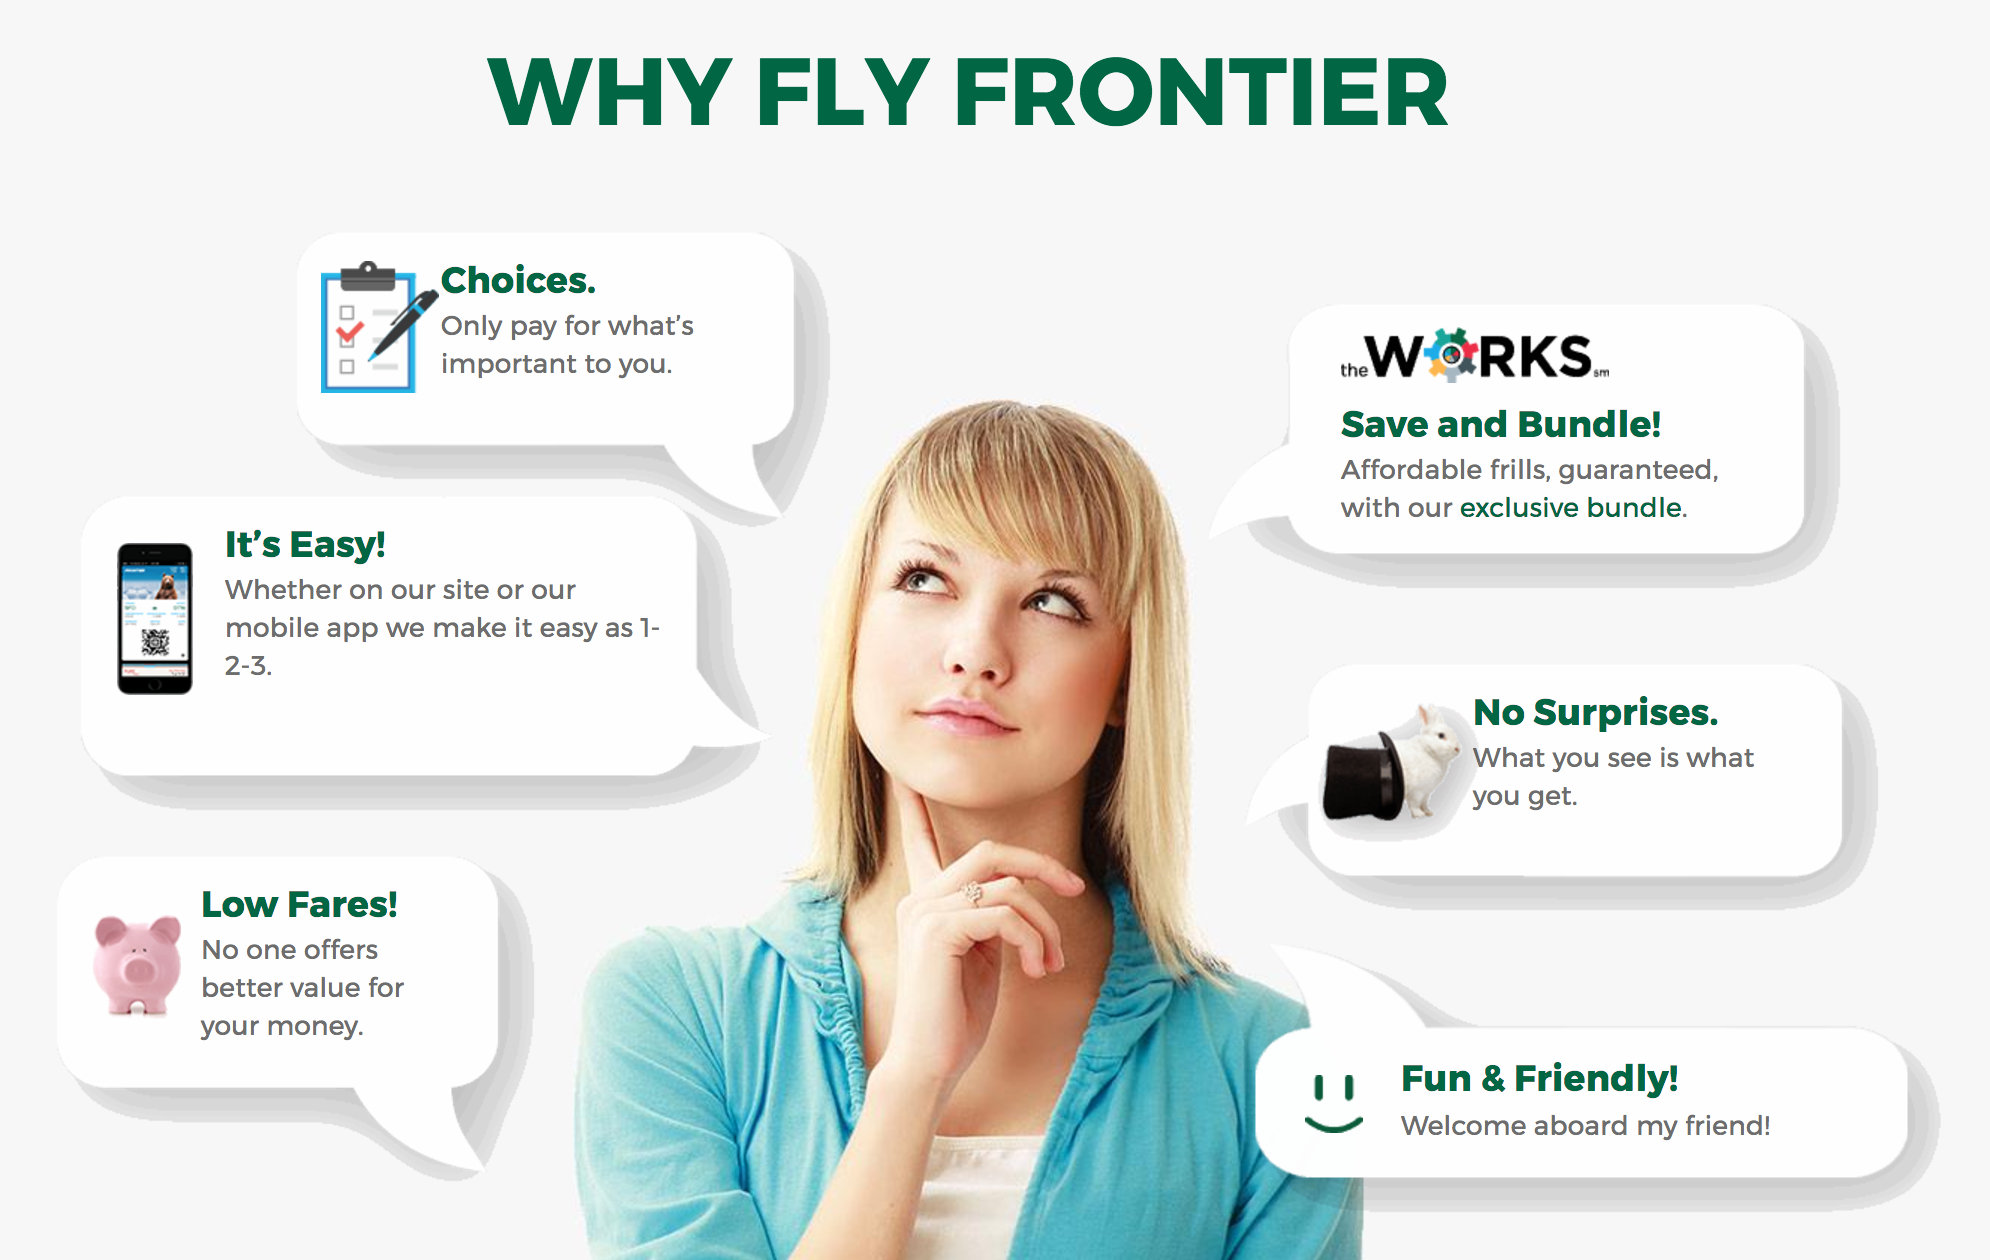 Why Fly Frontier